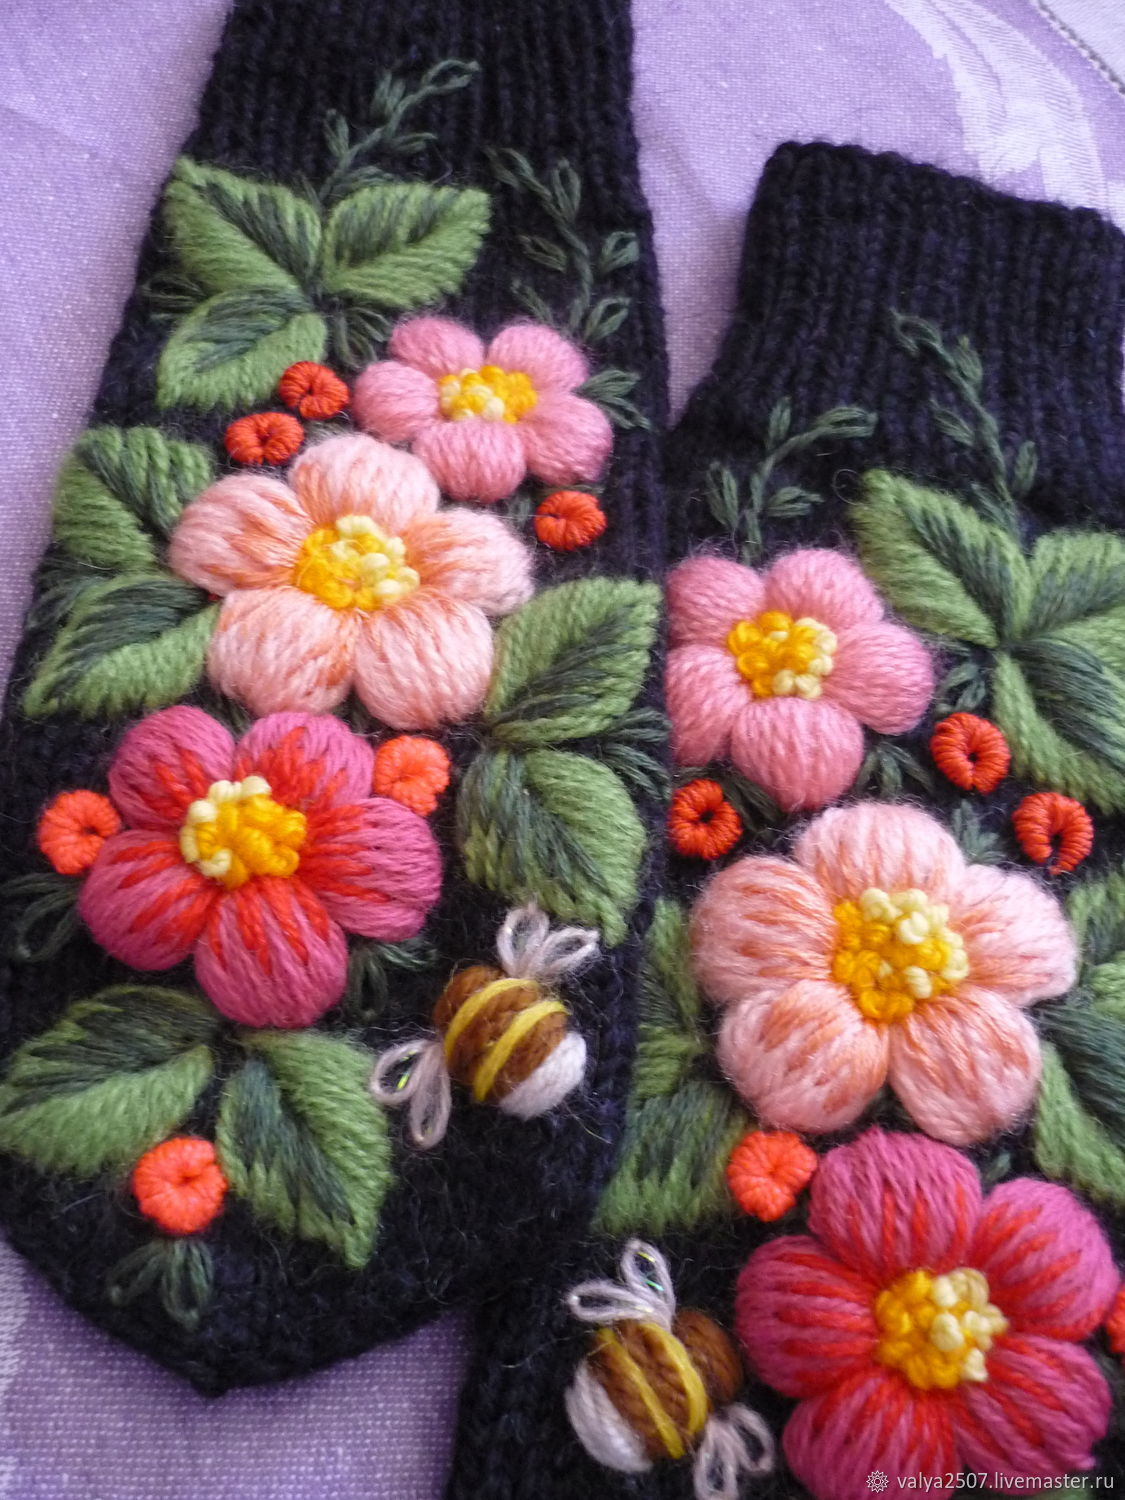 Mittens with hand embroidery 'Berries flowers', Mittens, Gribanovsky,  Фото №1